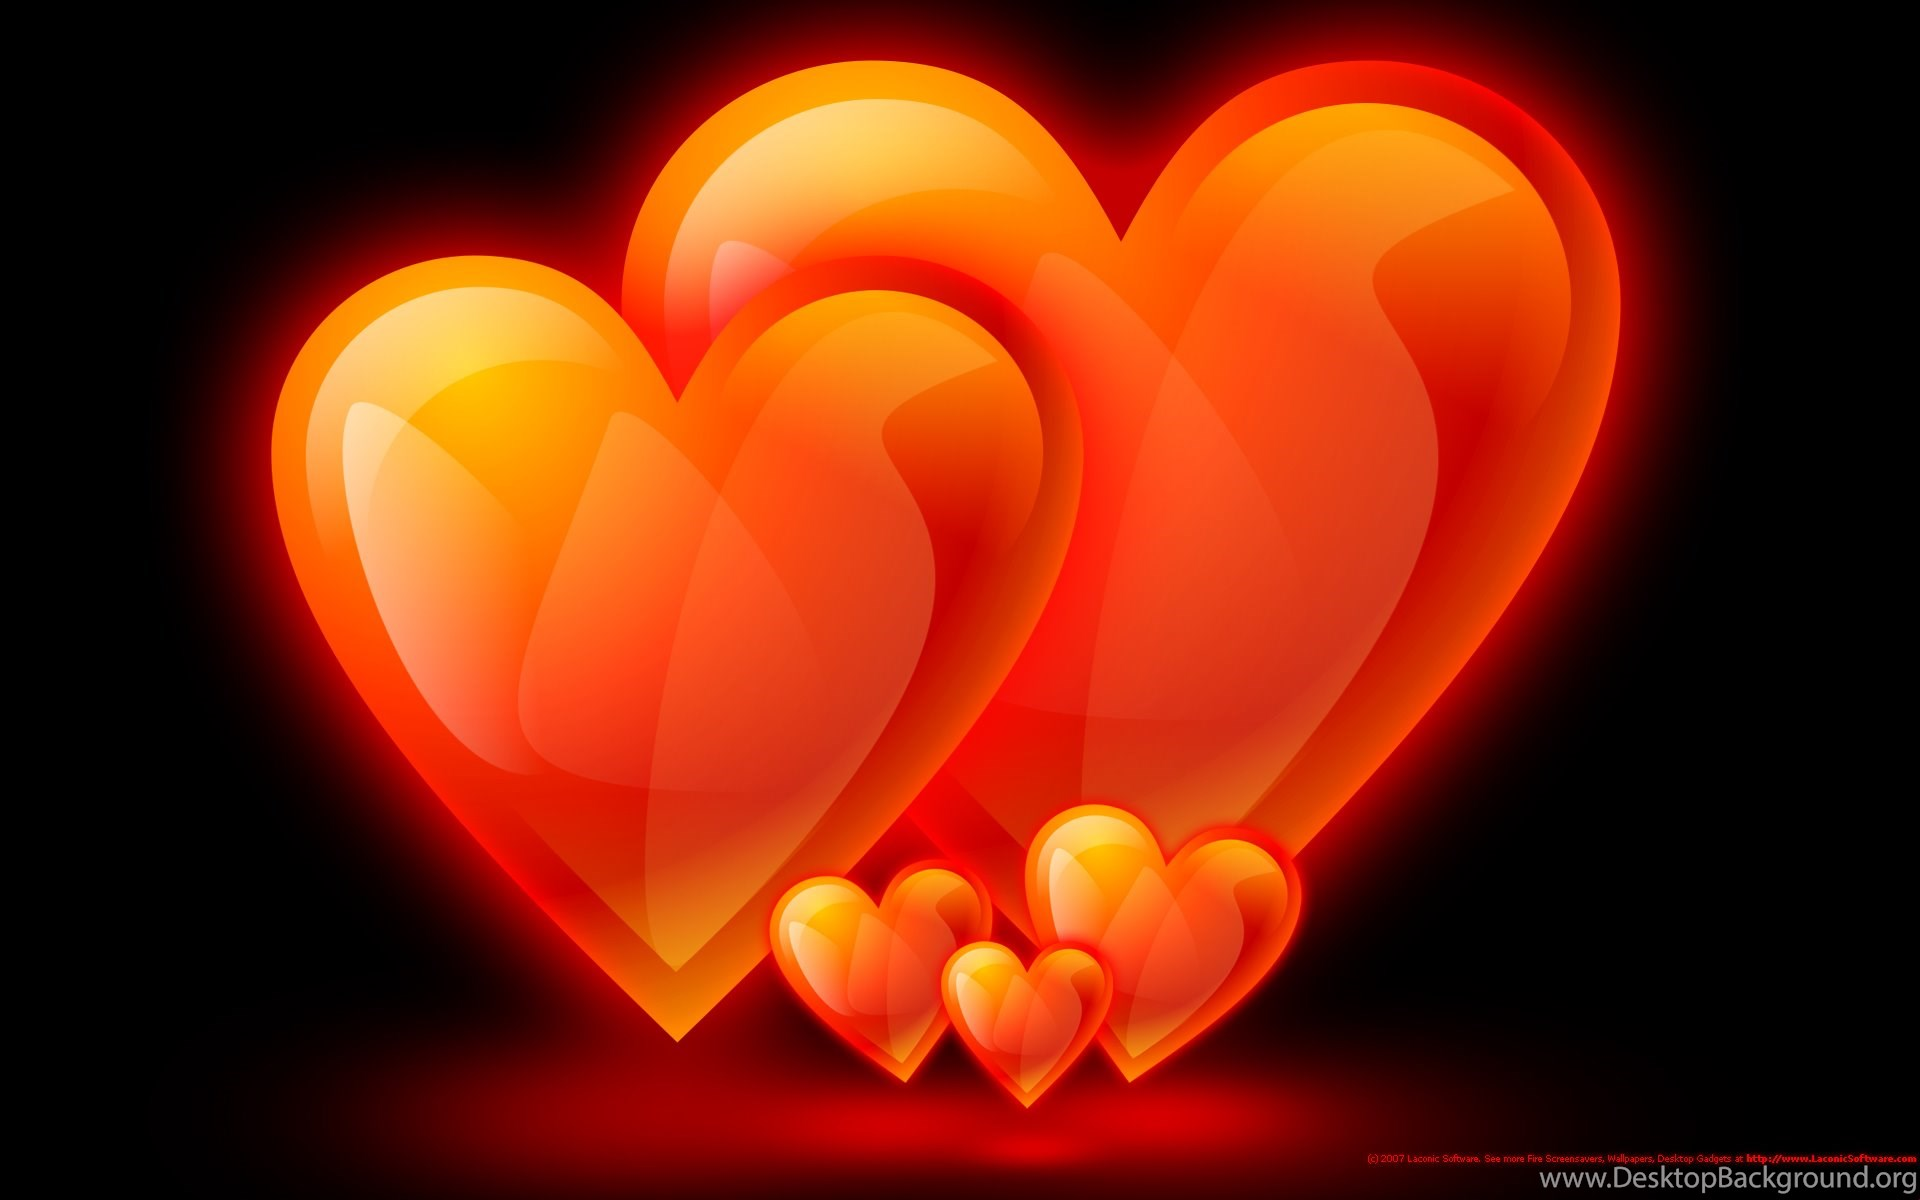 fire flame wallpaper hearts family screensavers backgrounds